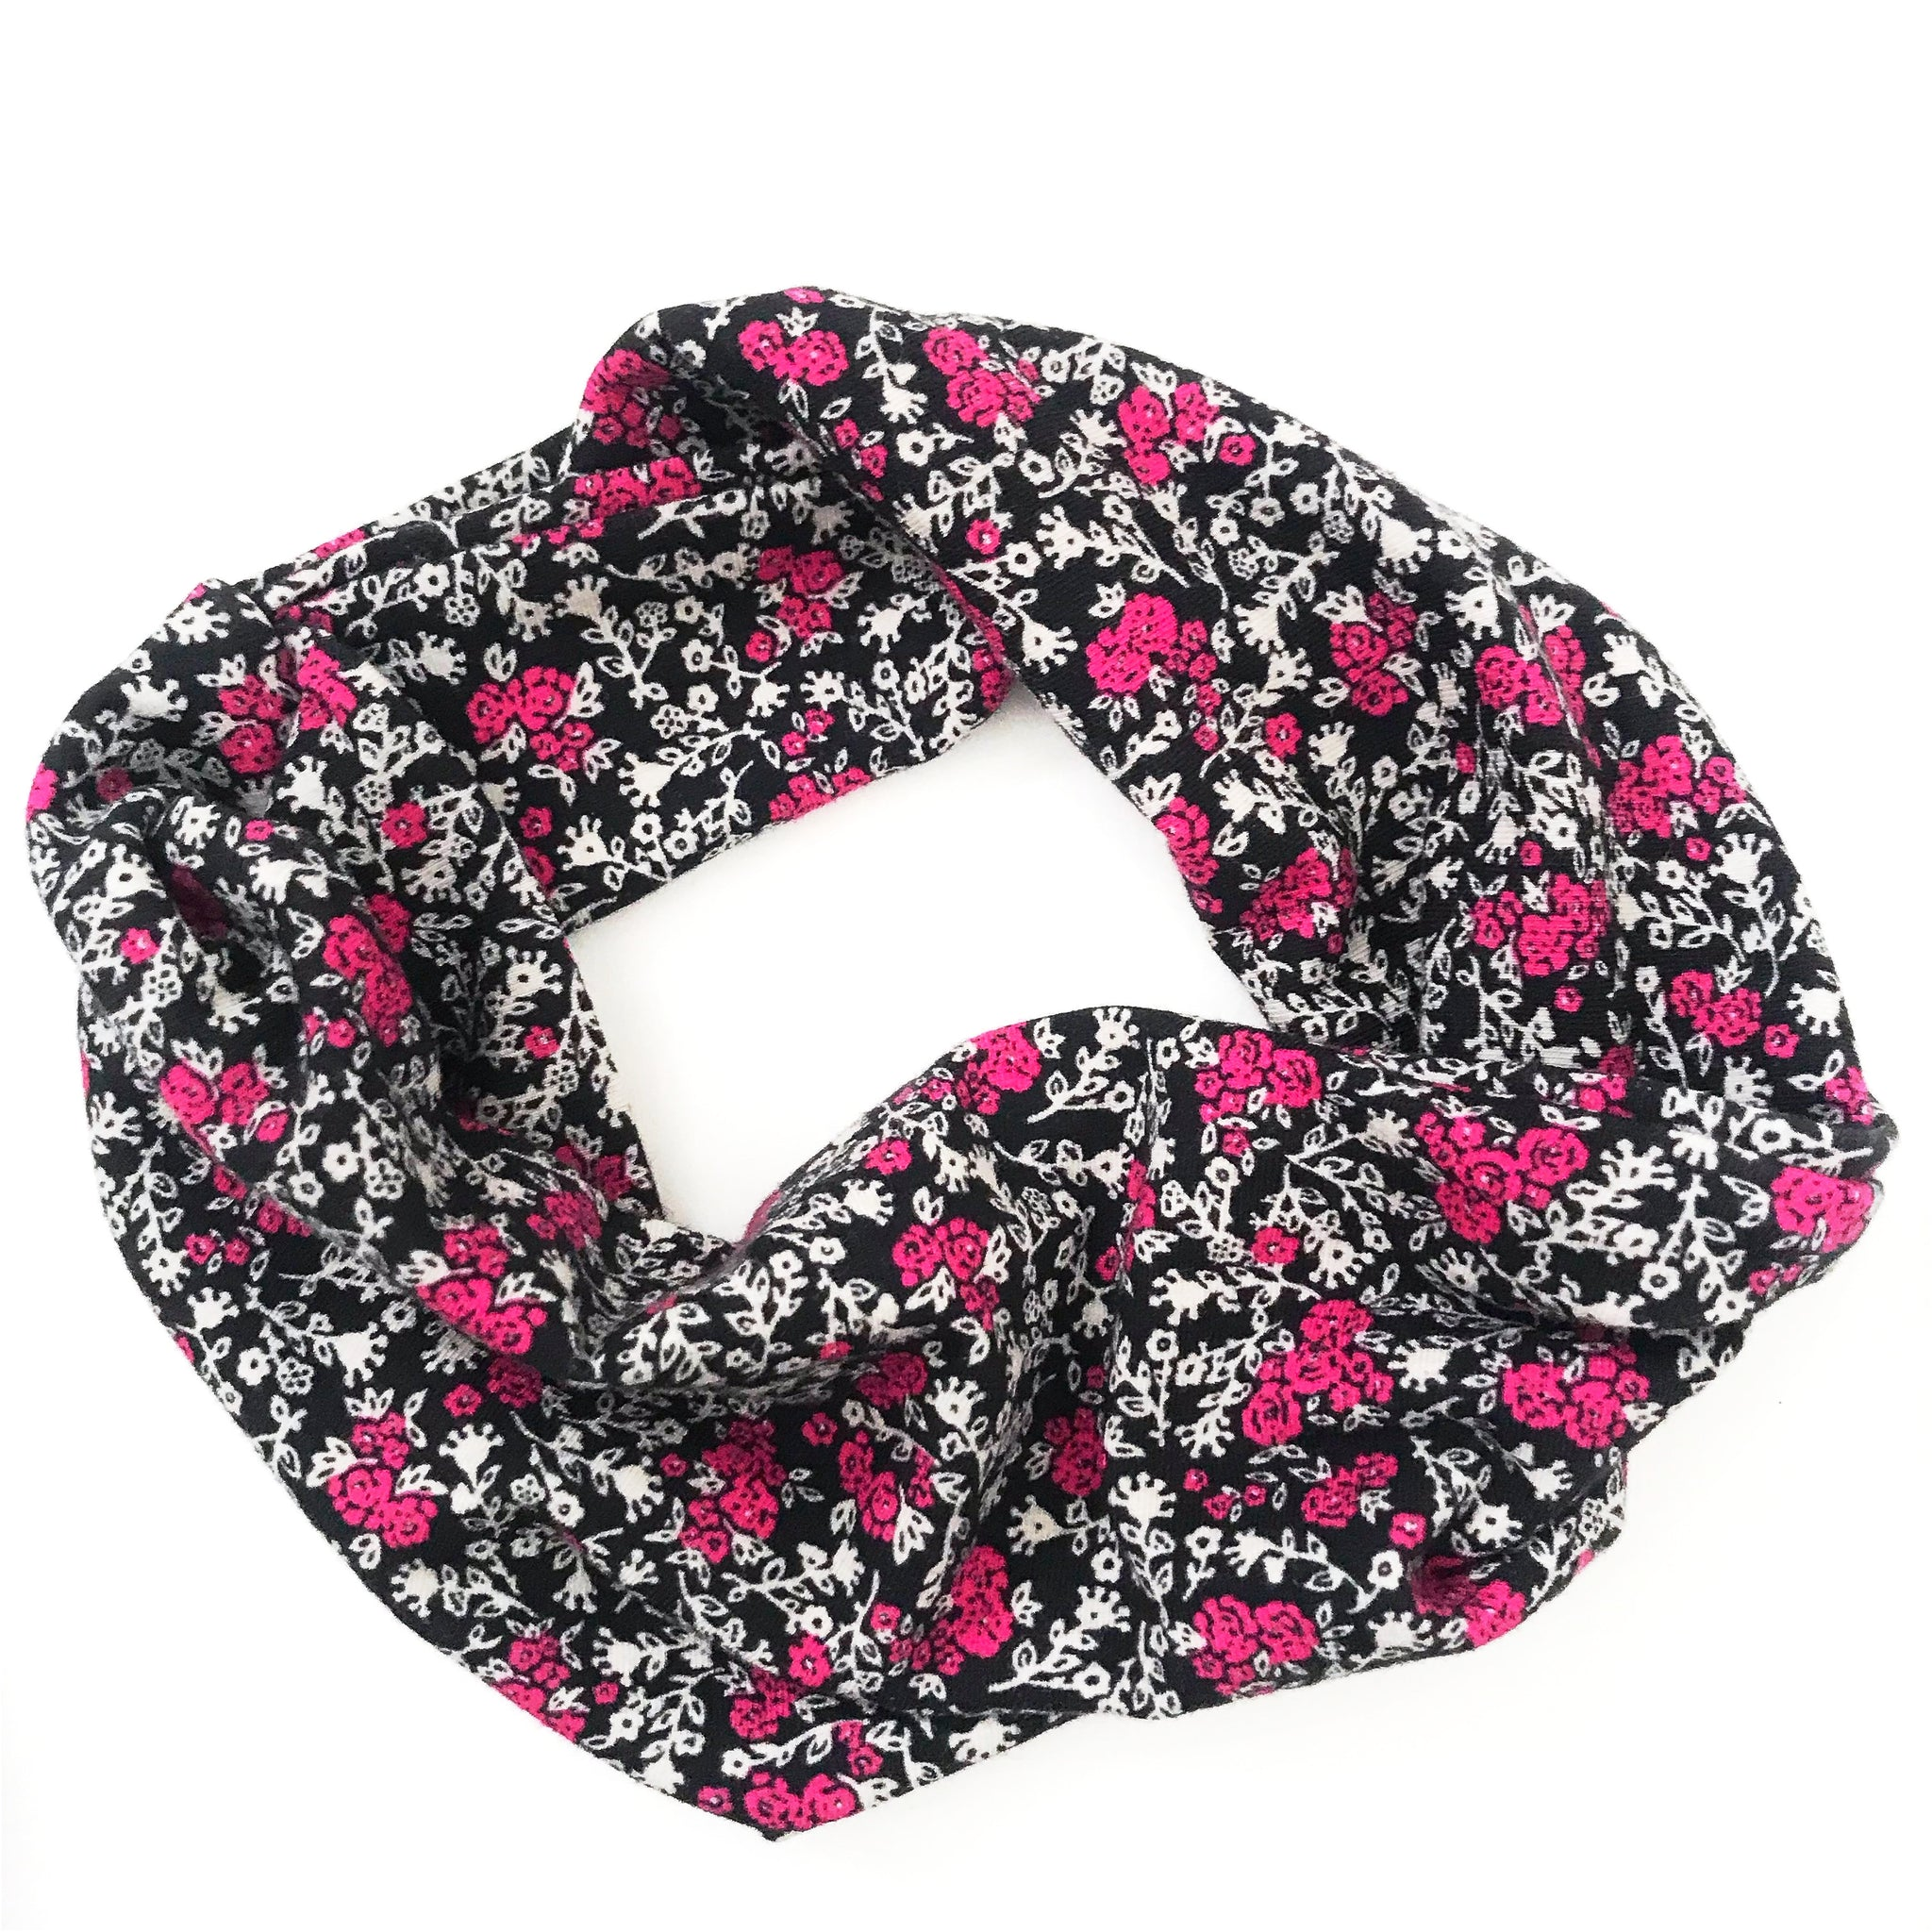 Virginia Double Twist Headband